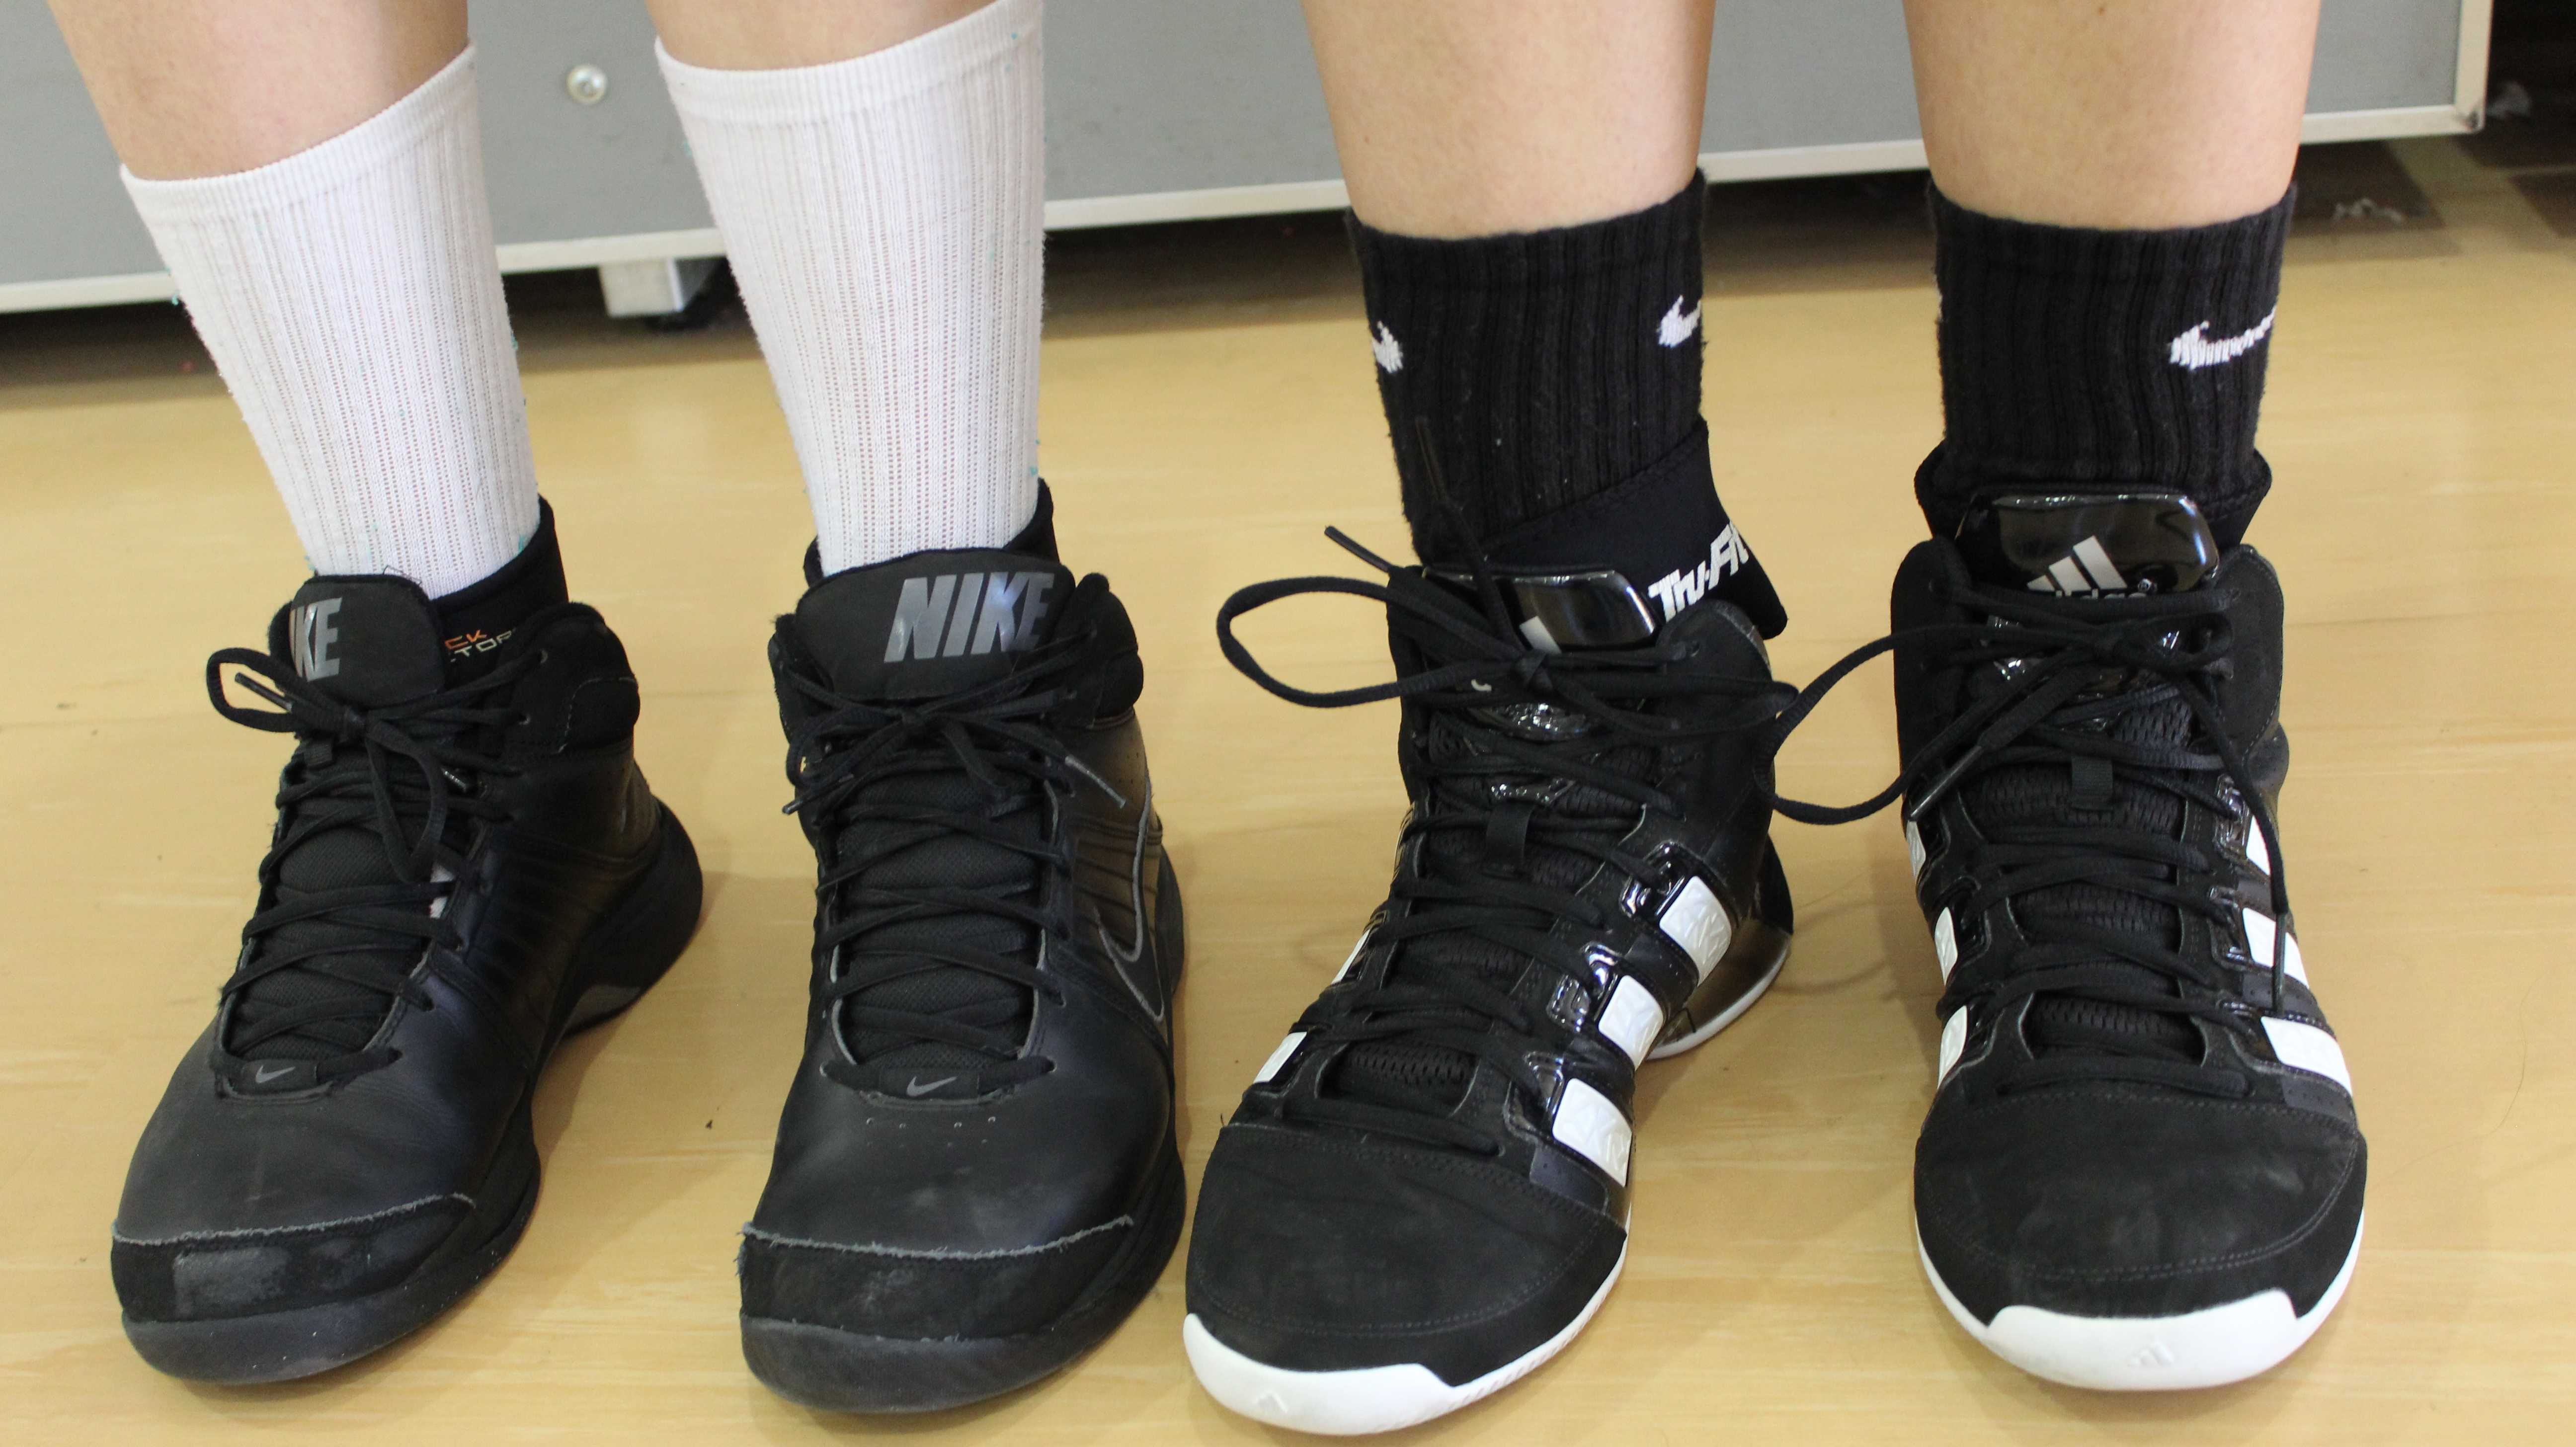 Caslow's basketball players wear compression sleeves on their ankles to prevent running injuries before they occur.